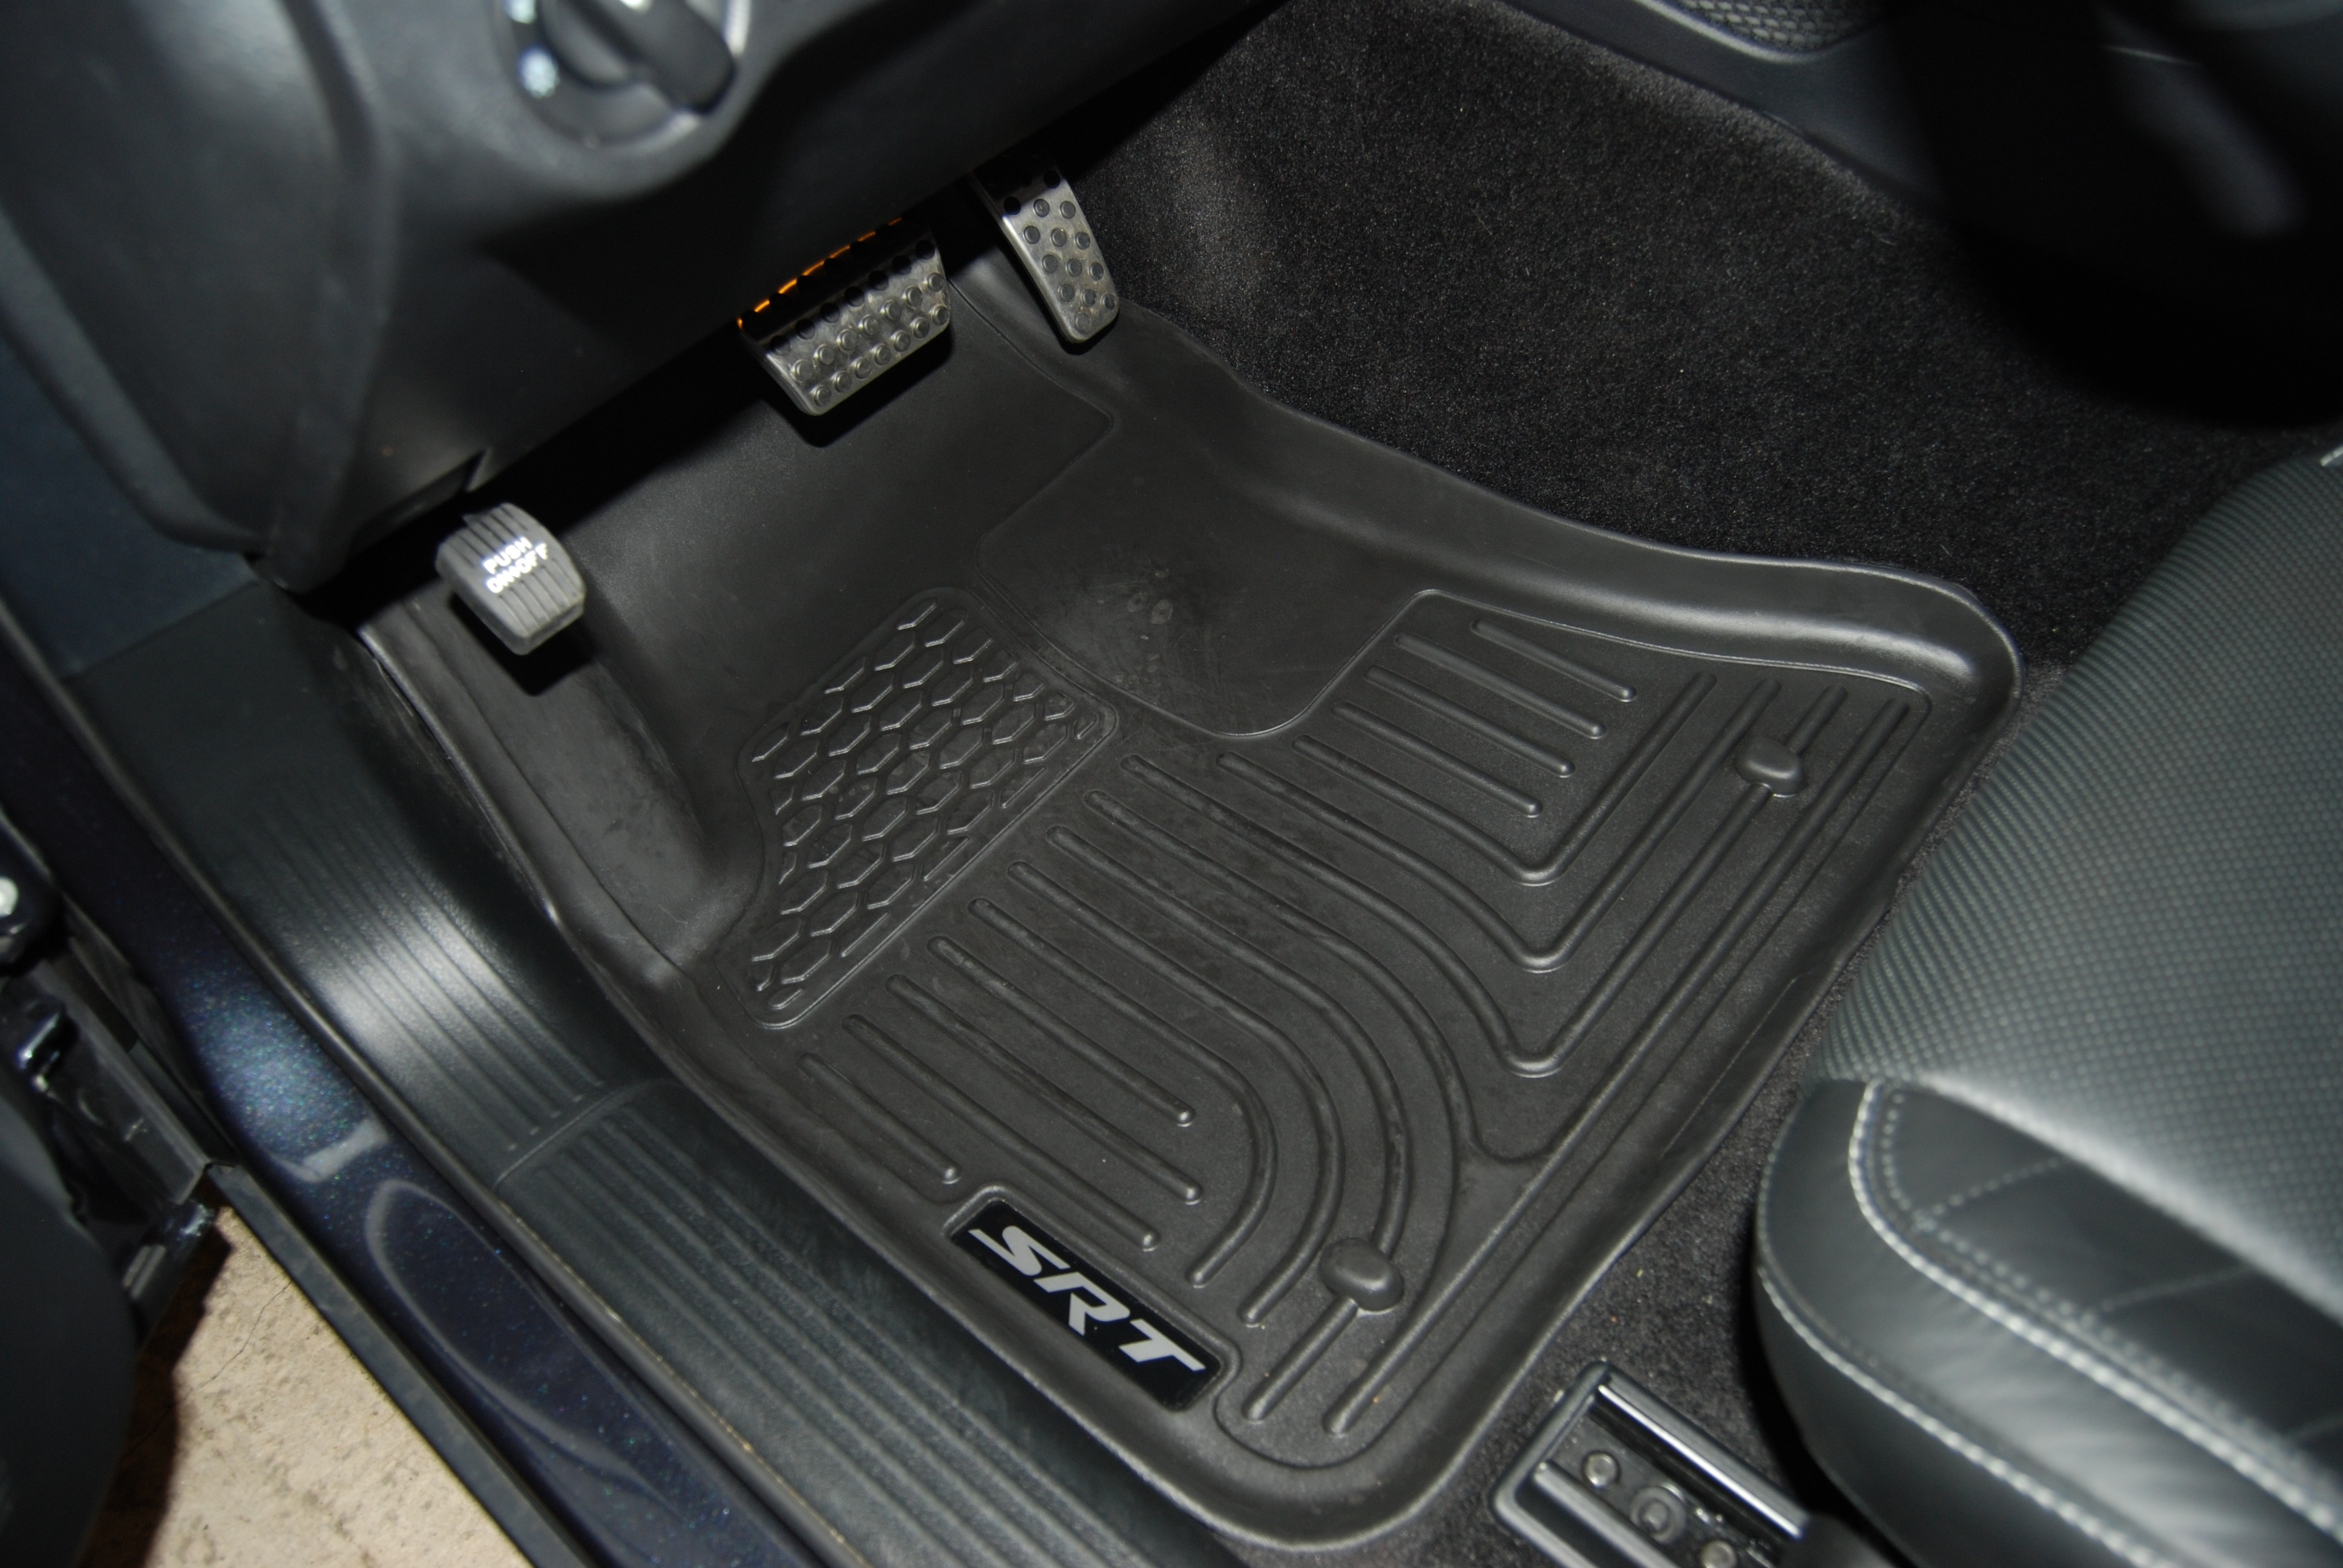 175545 Take A Look About Challenger Floor Mats with Terrific Pictures Cars Review